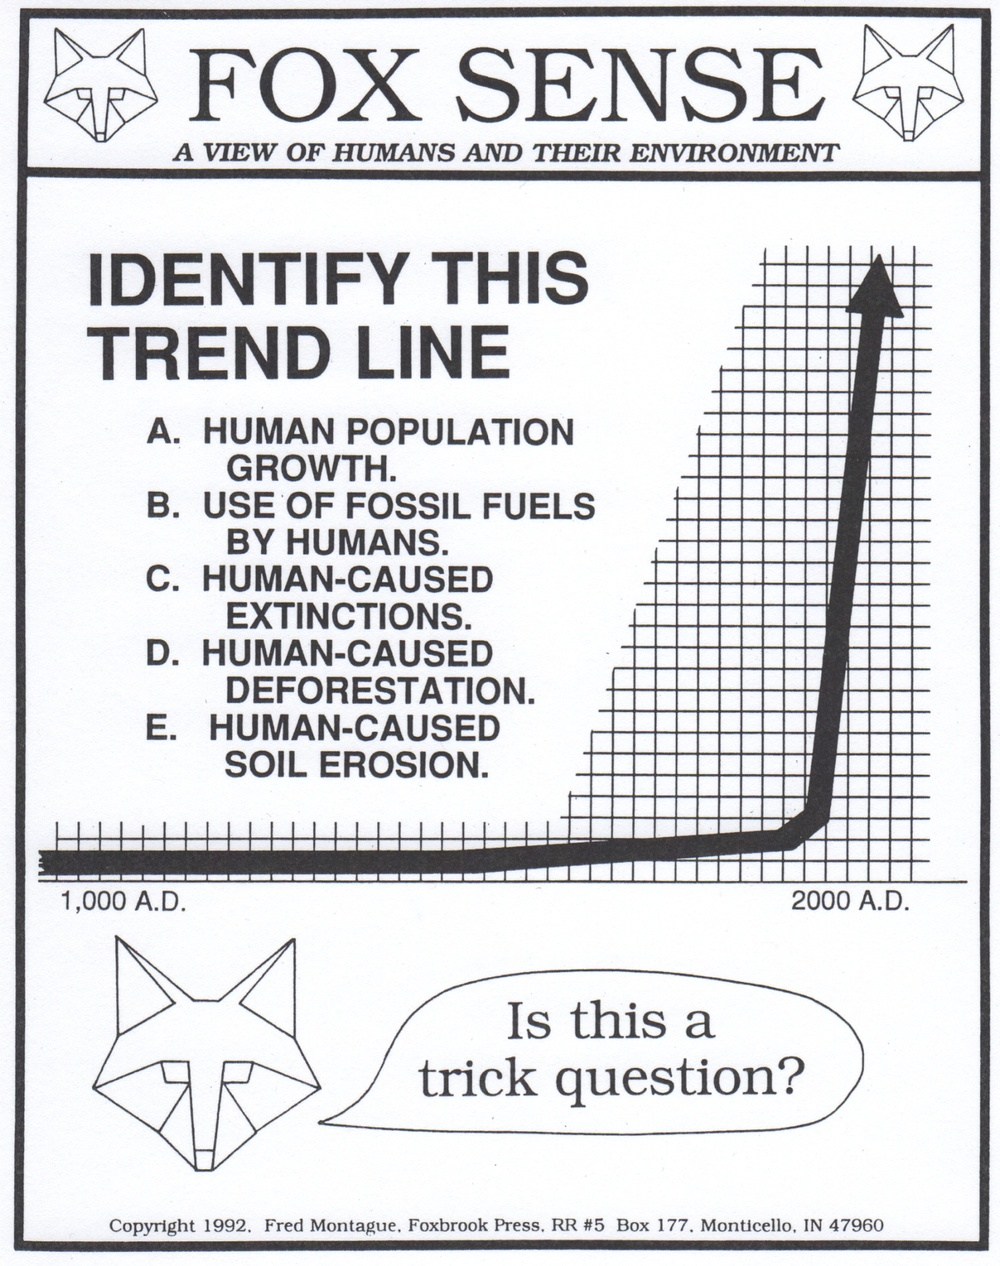 FoxSense: Identify This Trend Line© Fred Montague